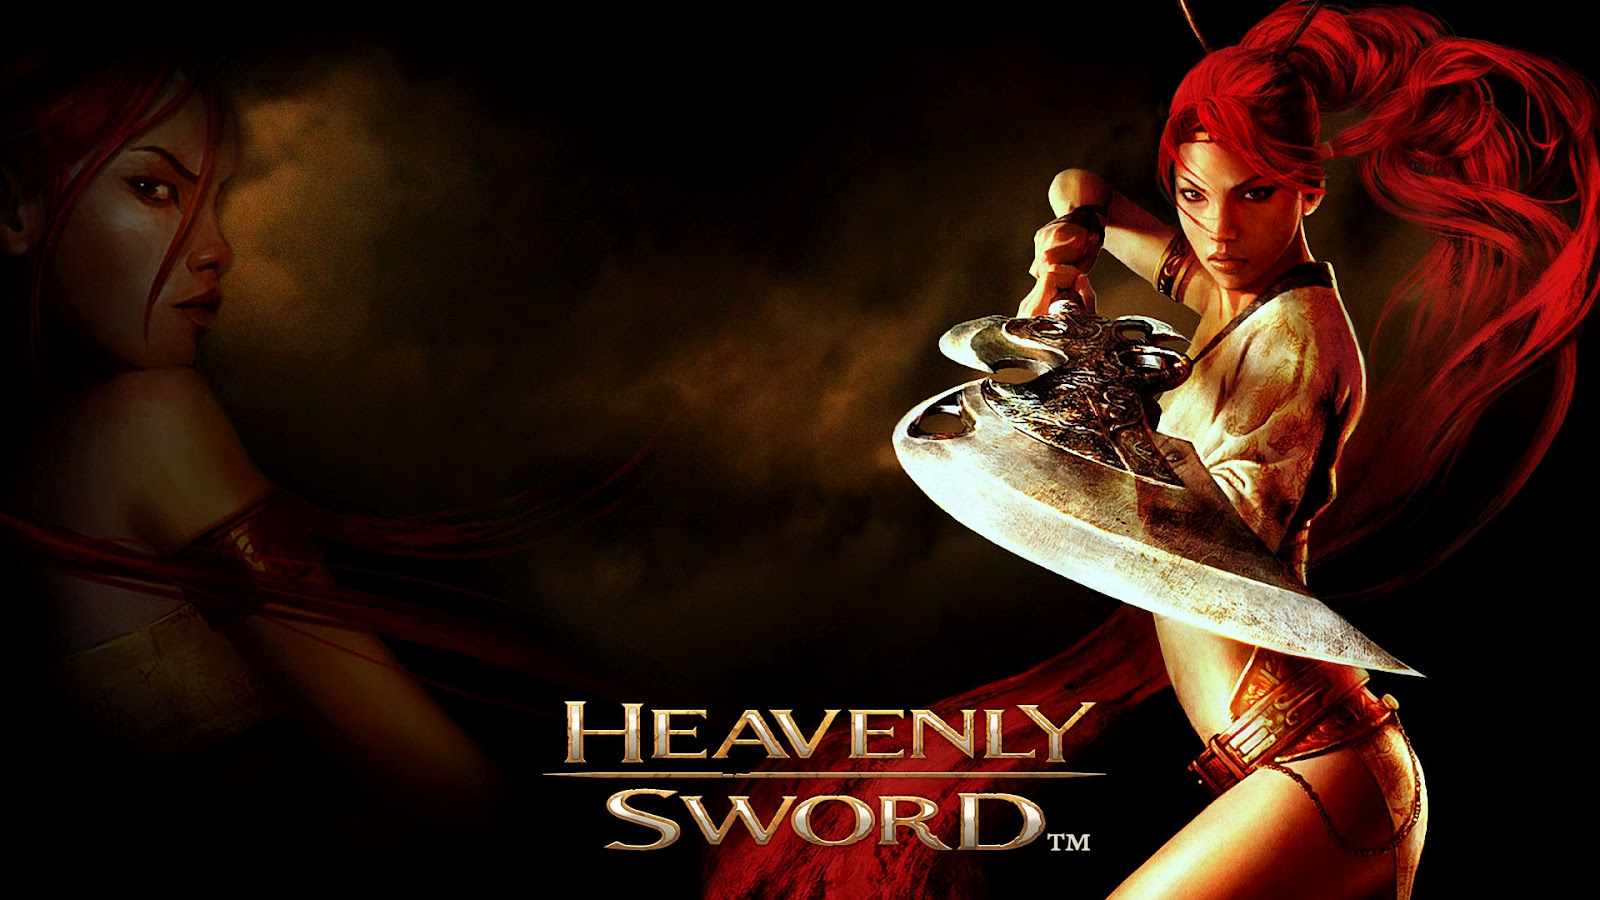 http://2.bp.blogspot.com/-mJCsoEam00s/UAU6oZ8jqCI/AAAAAAAABXk/bmXGOkiP-4Y/s1600/heavenly+sword+wallpaper+background+ninja+theory+sony+action+2.jpg